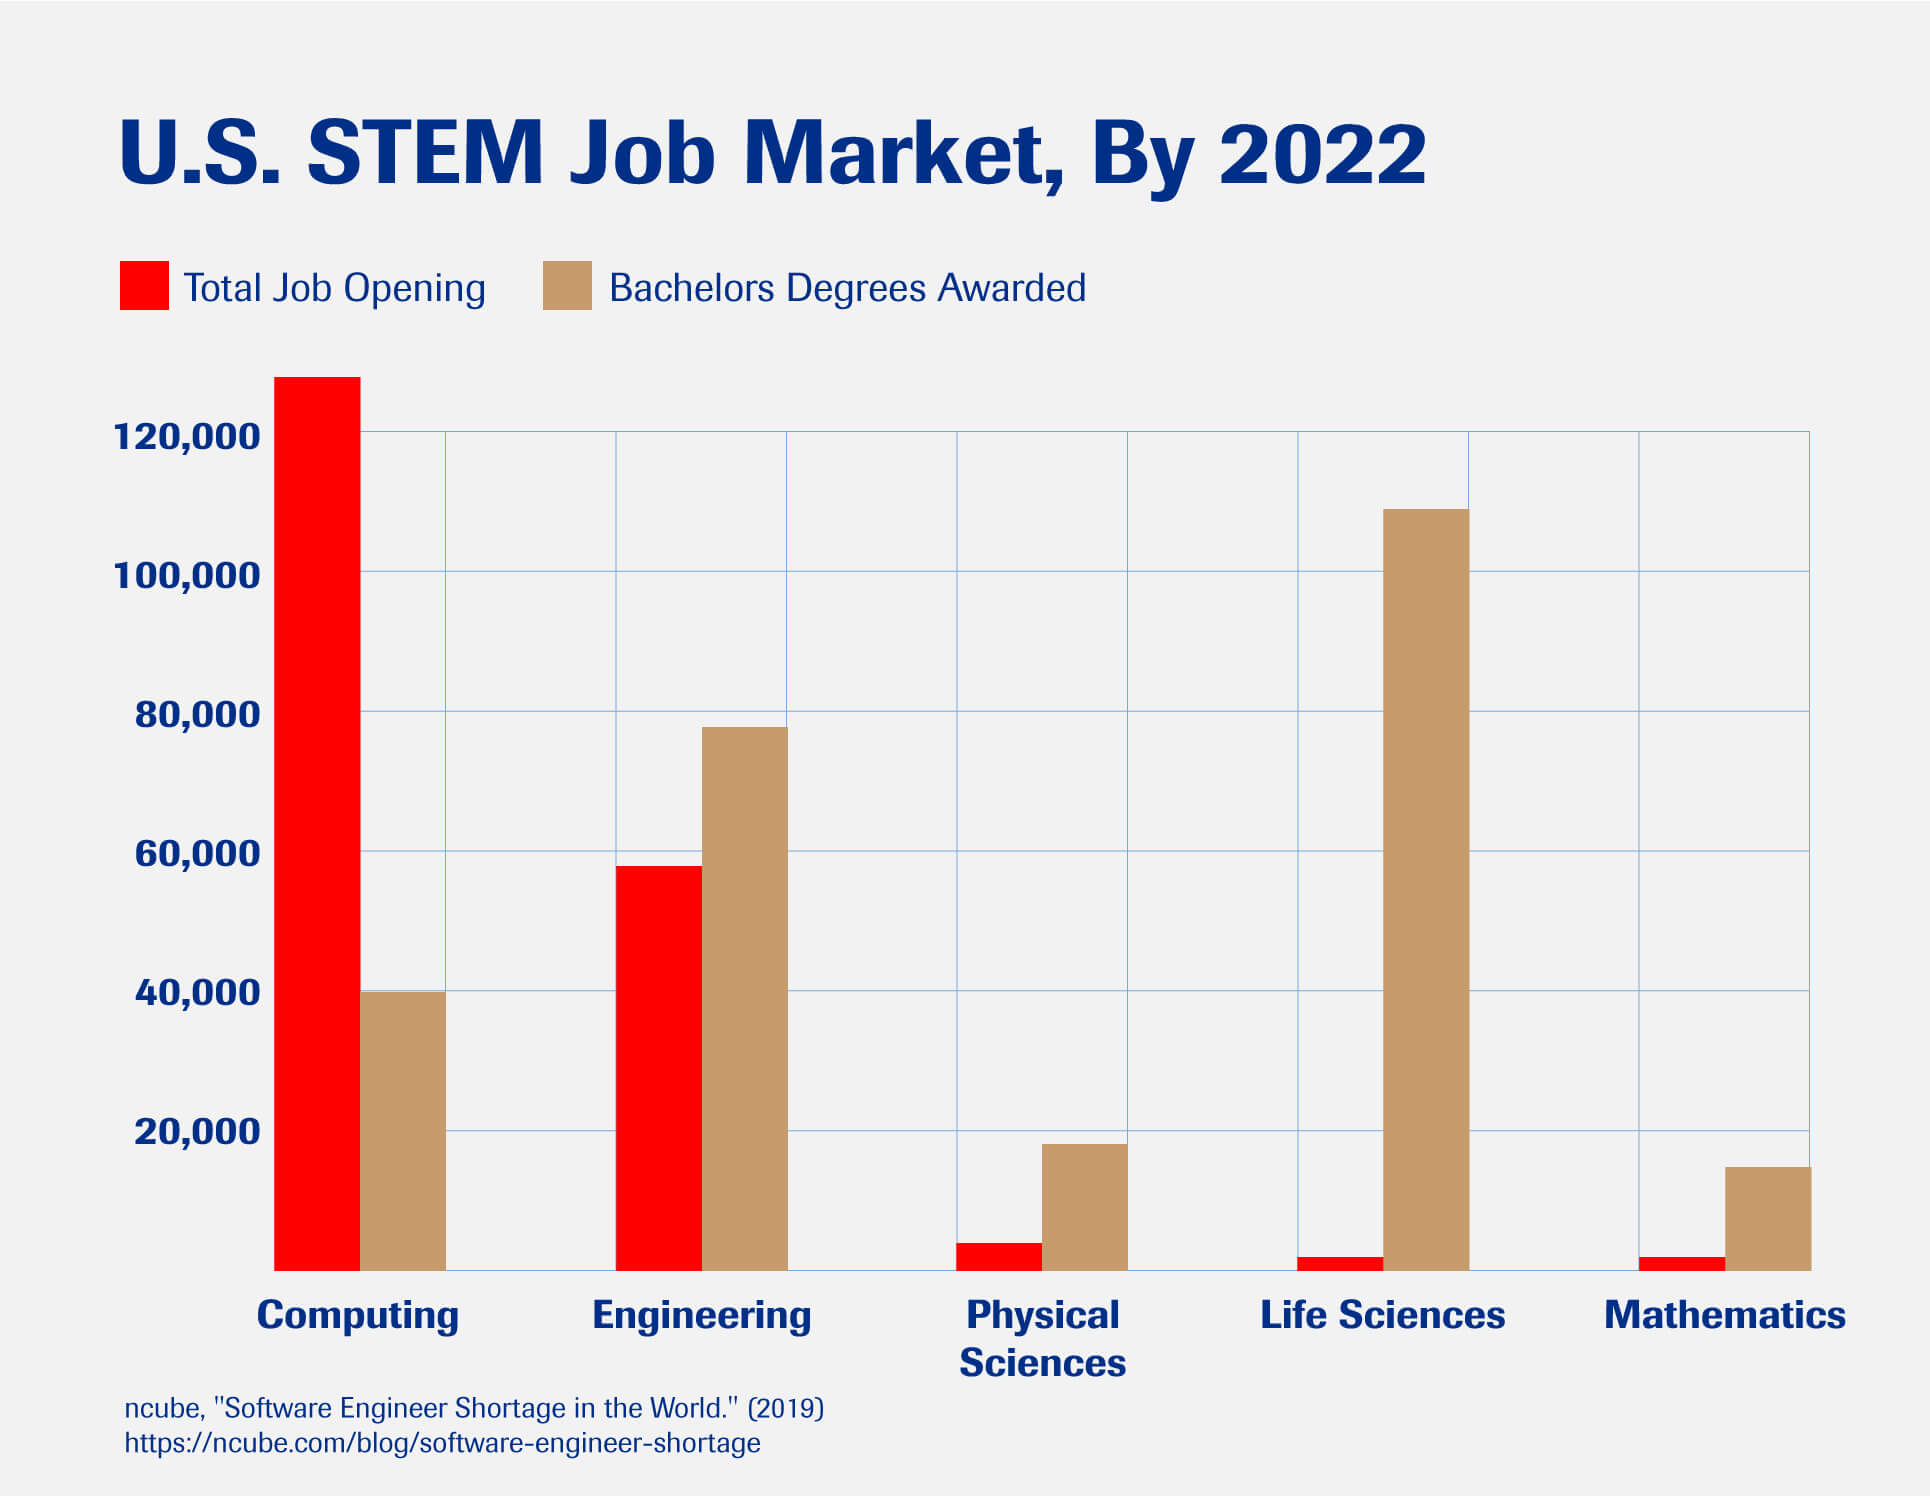 A chart showing the number of STEM job openings in the U.S. market compared to degrees awarded